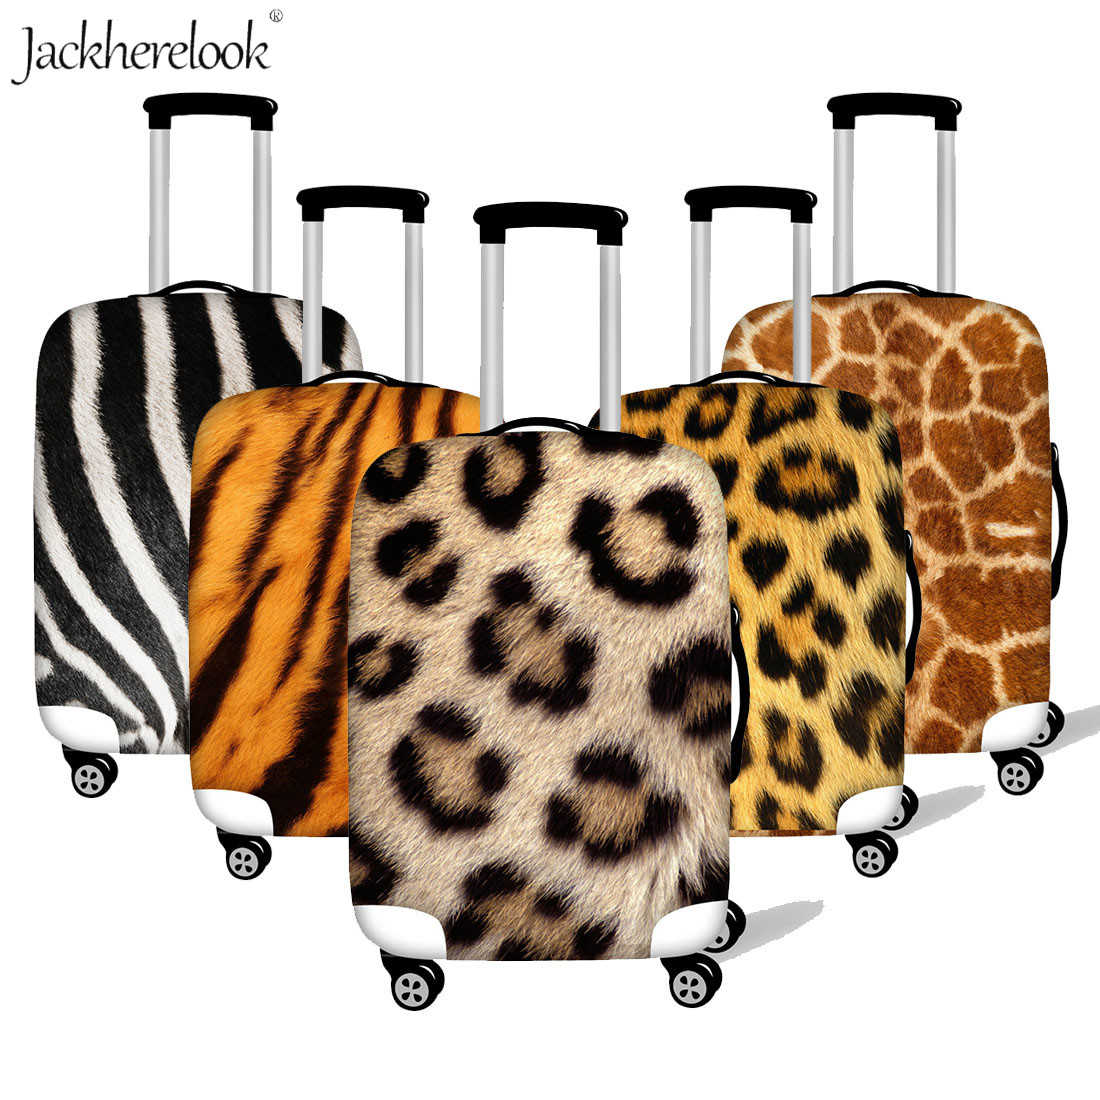 Cheetah Zebra Fur Printed Luggage Cover Suitcase Dustproof Sheet Lepoard Tiger Giraffe Travel On Road Trolley Case Protect Cover